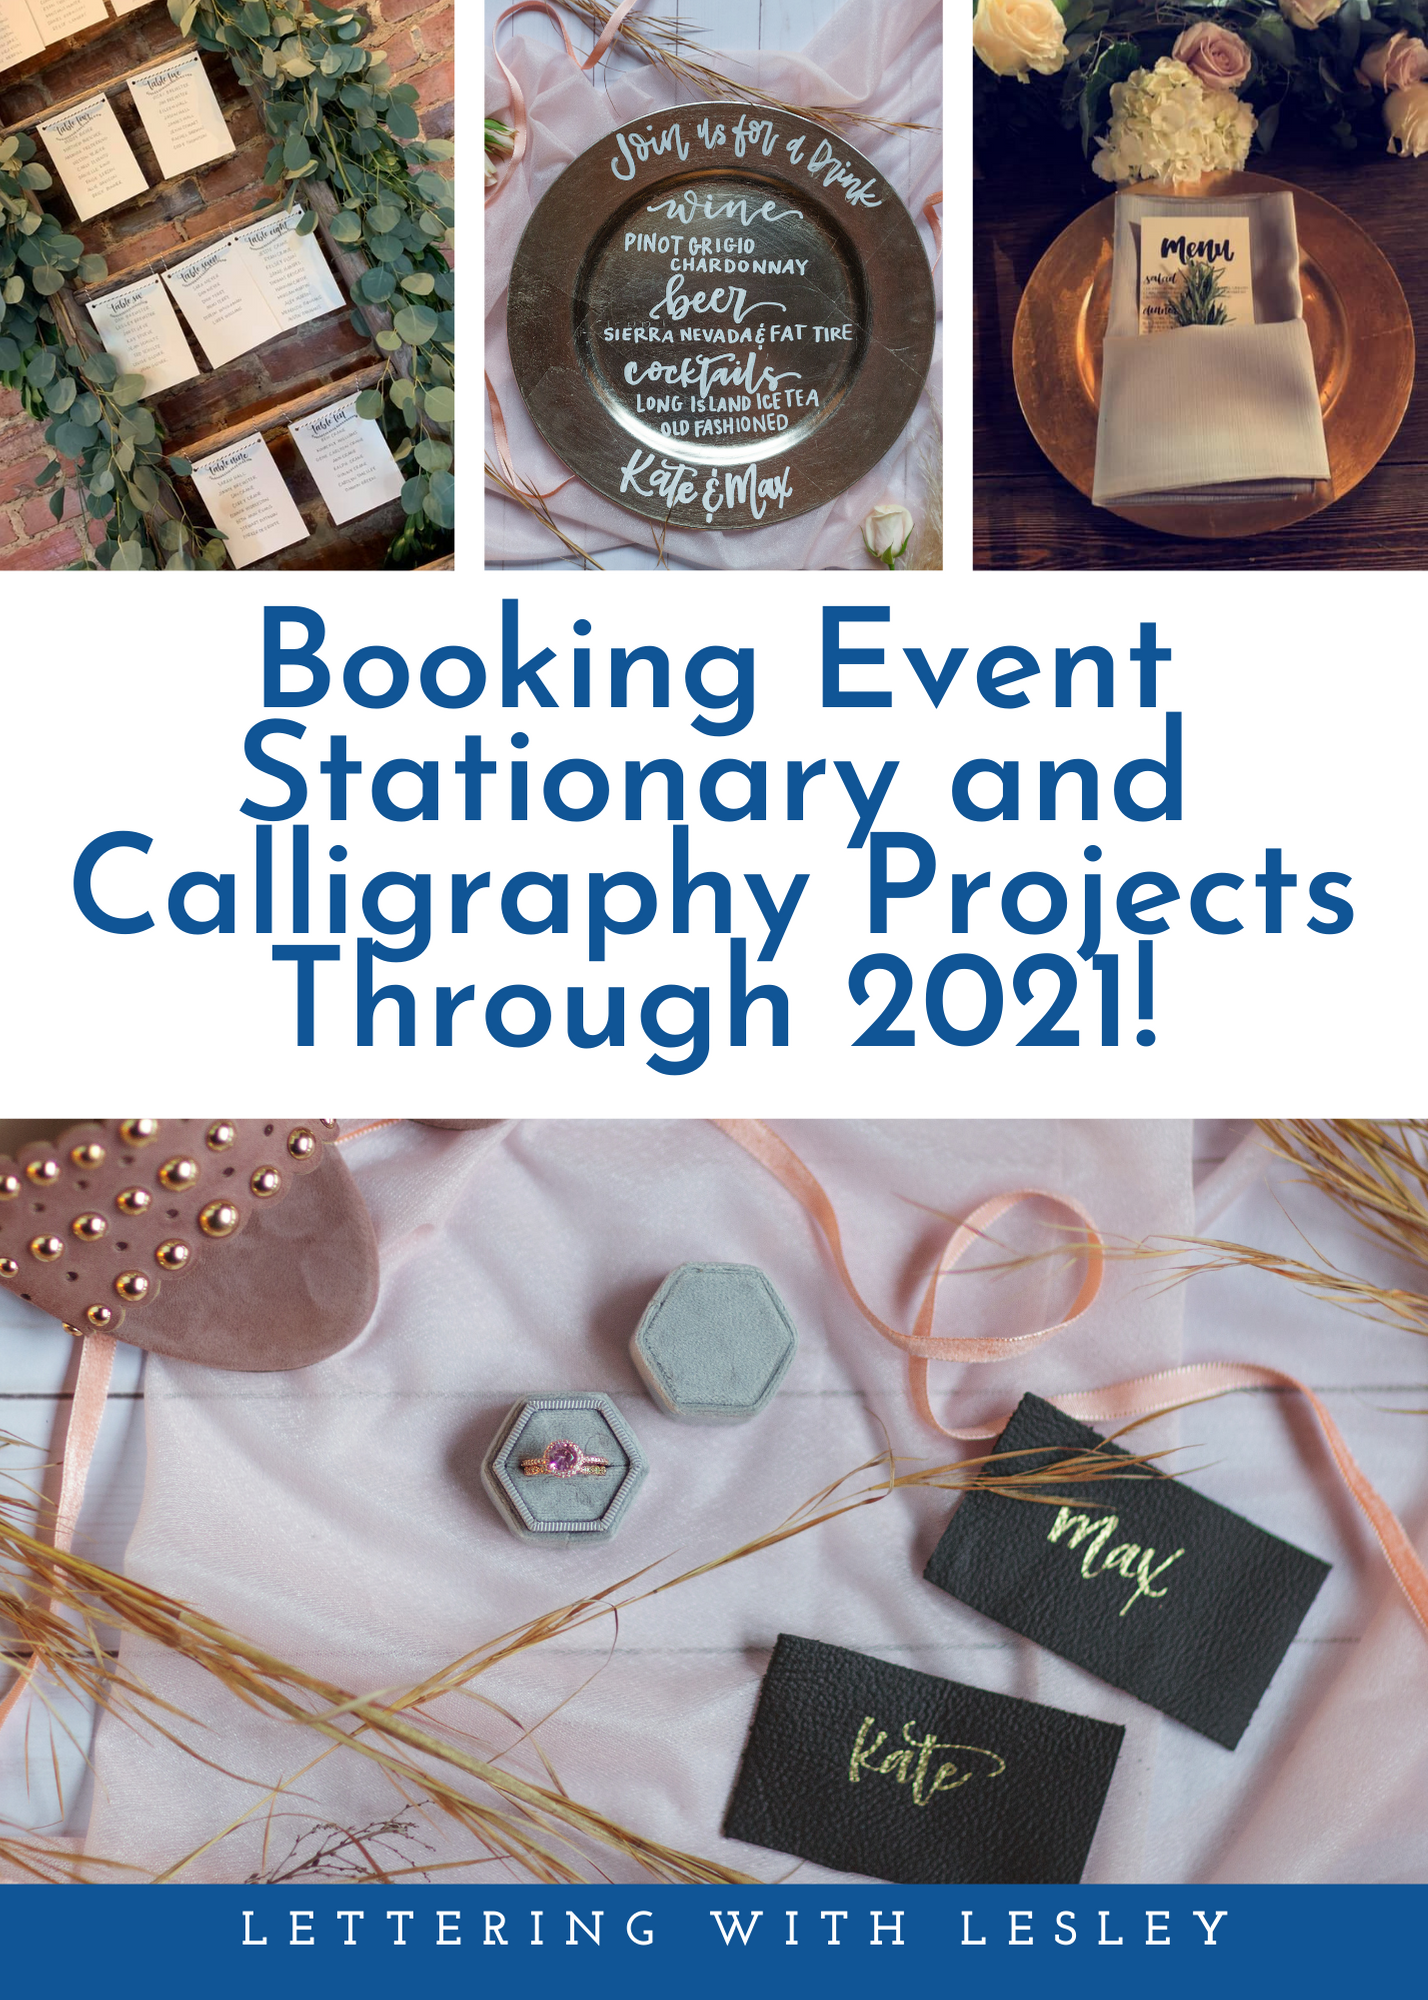 Now Booking through 2021!